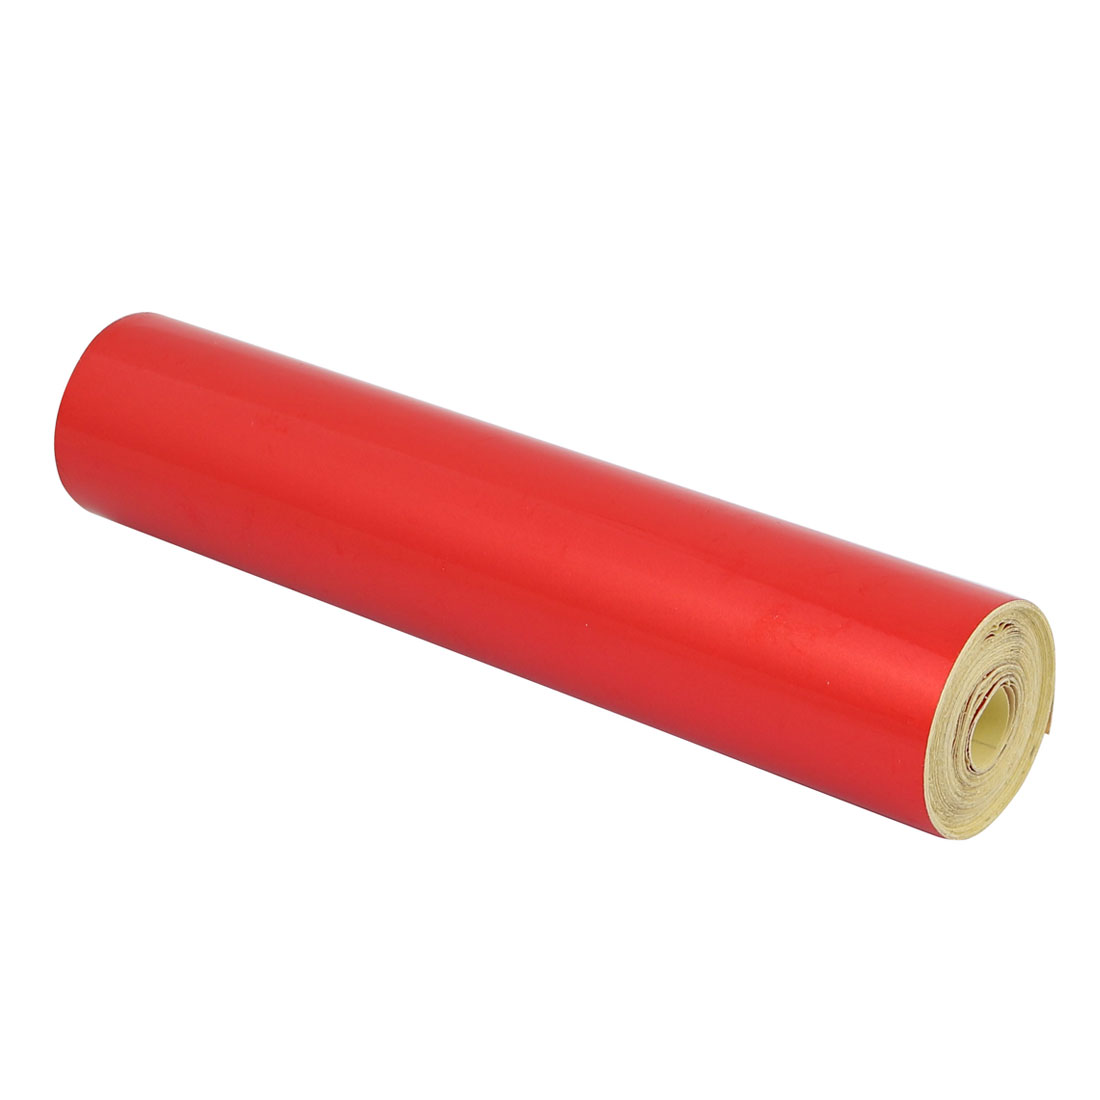 Single Sided Adhesive Reflective Warning Tape Red 5M Length 20cm Width